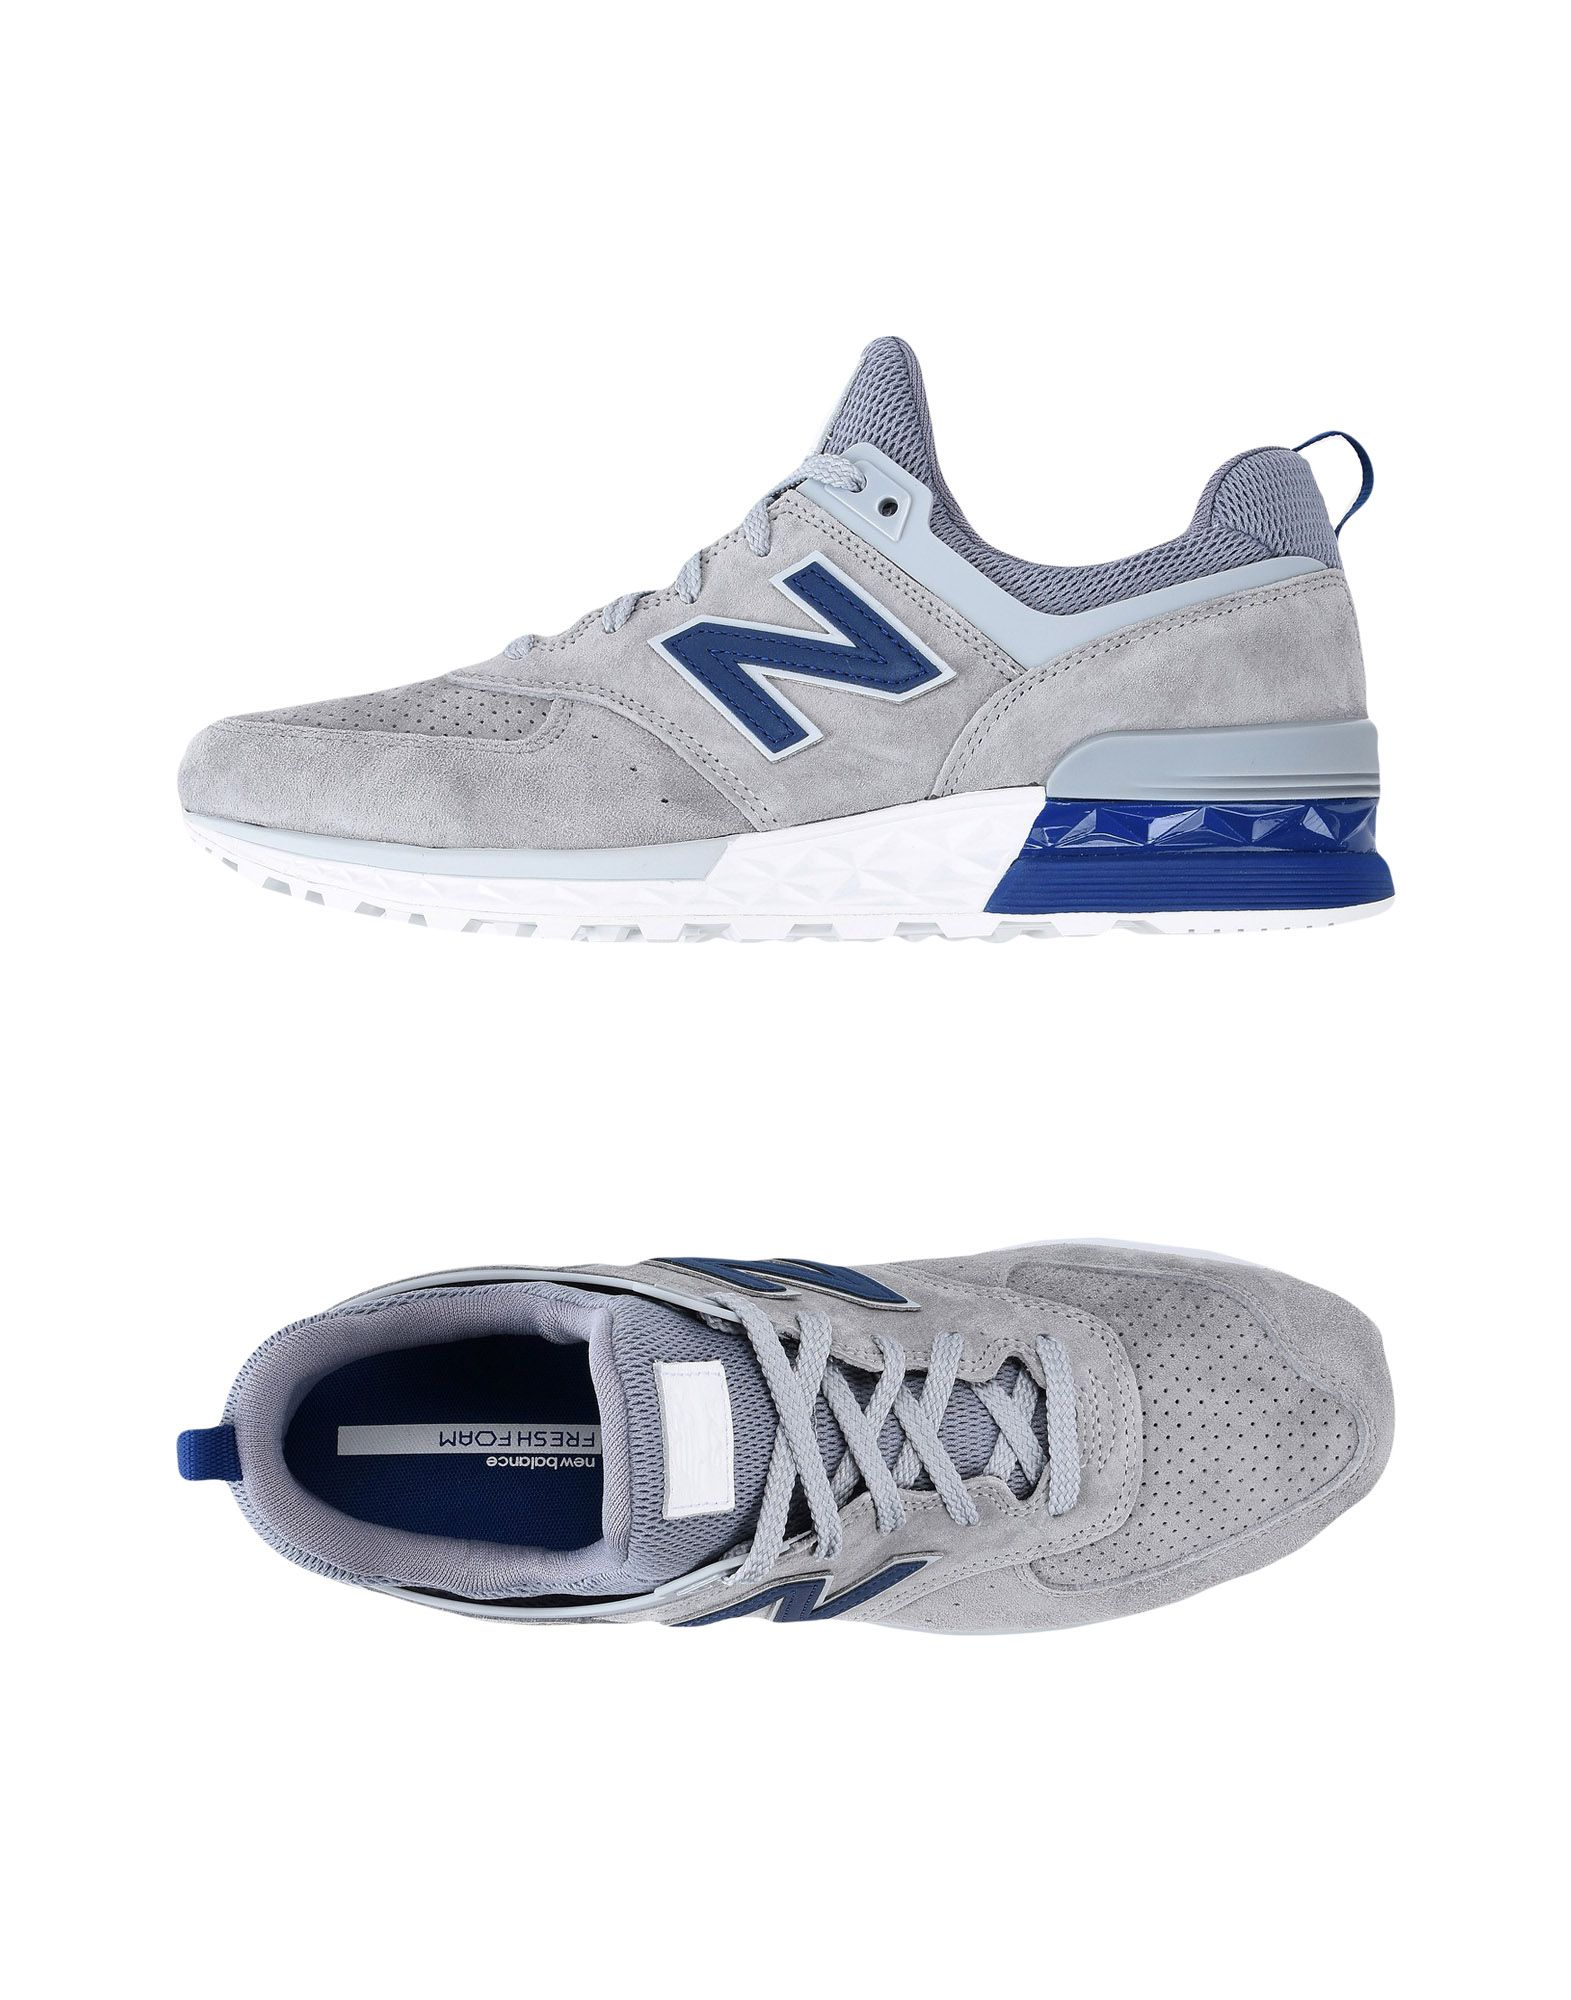 Sneakers New Balance 574 Sport Suede Perf - Uomo - 11504273DK